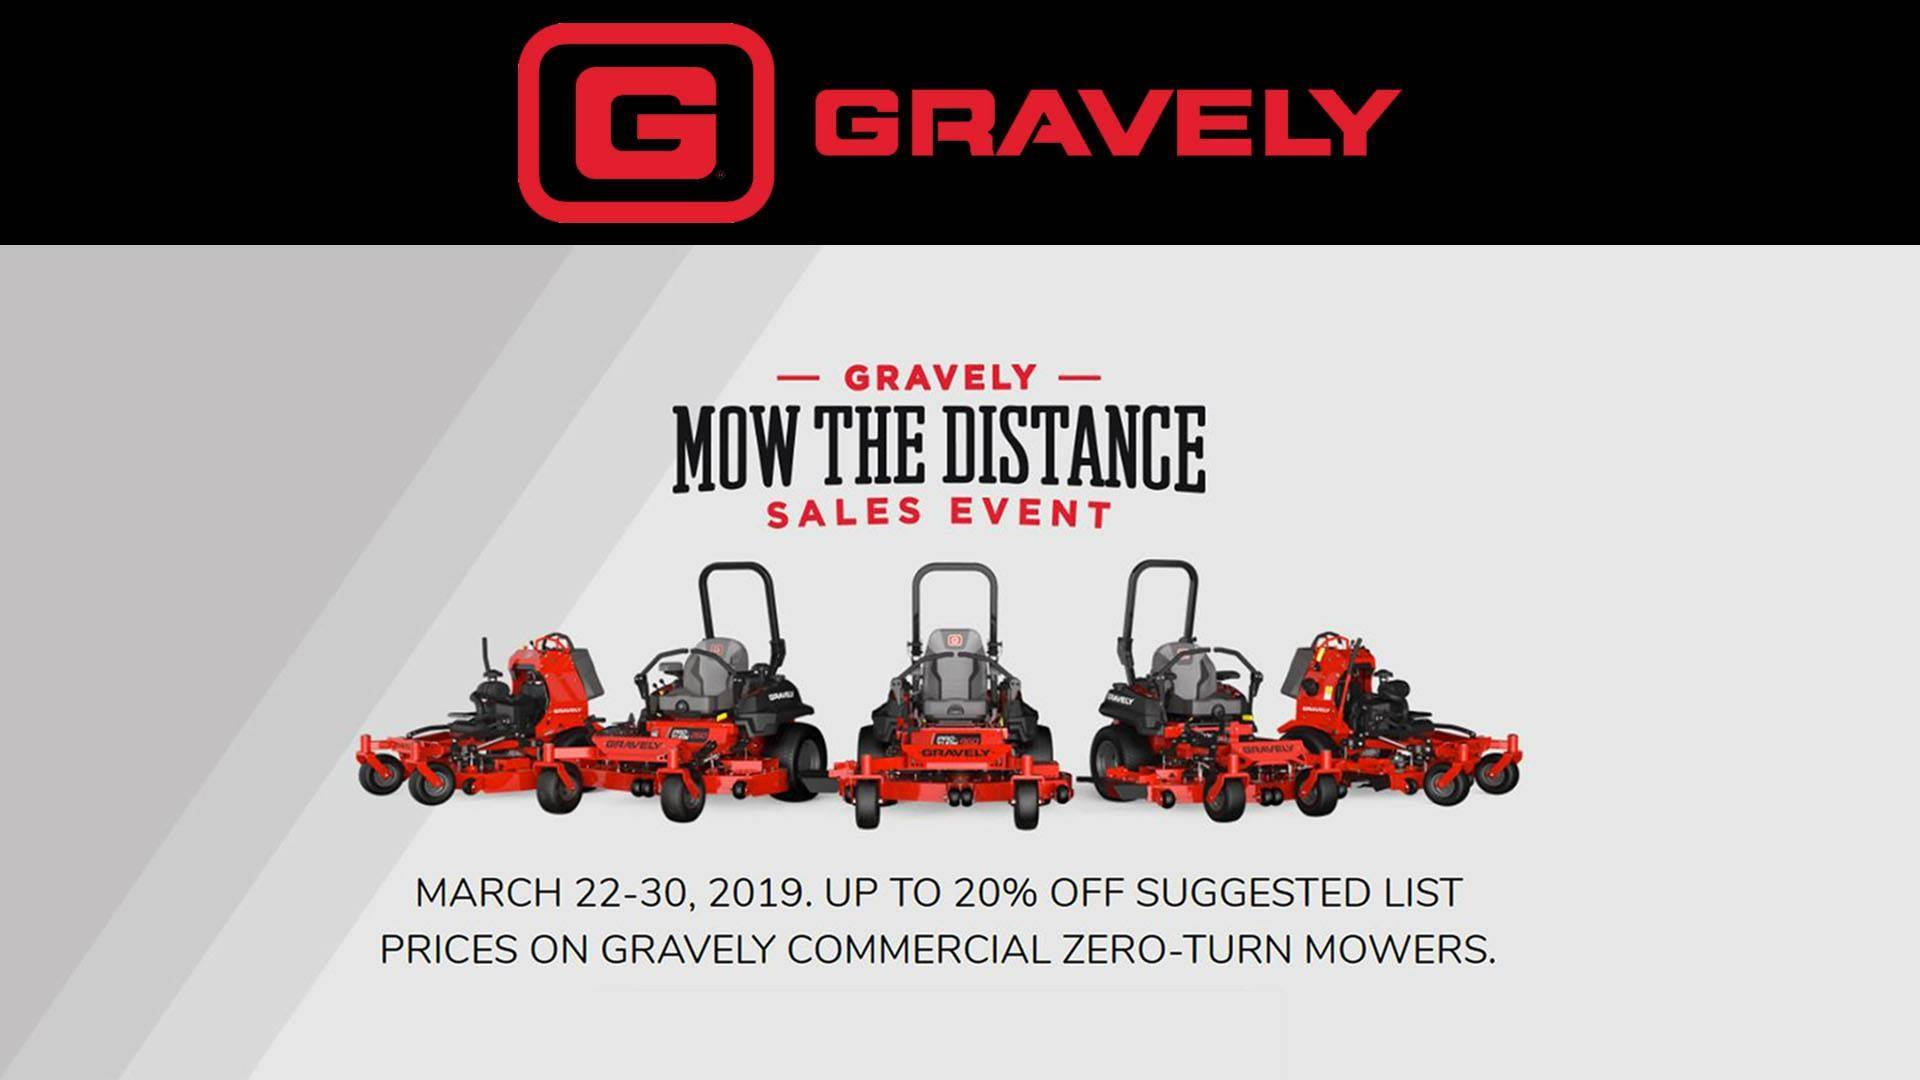 Gravely - Mow the Distance Sales Event